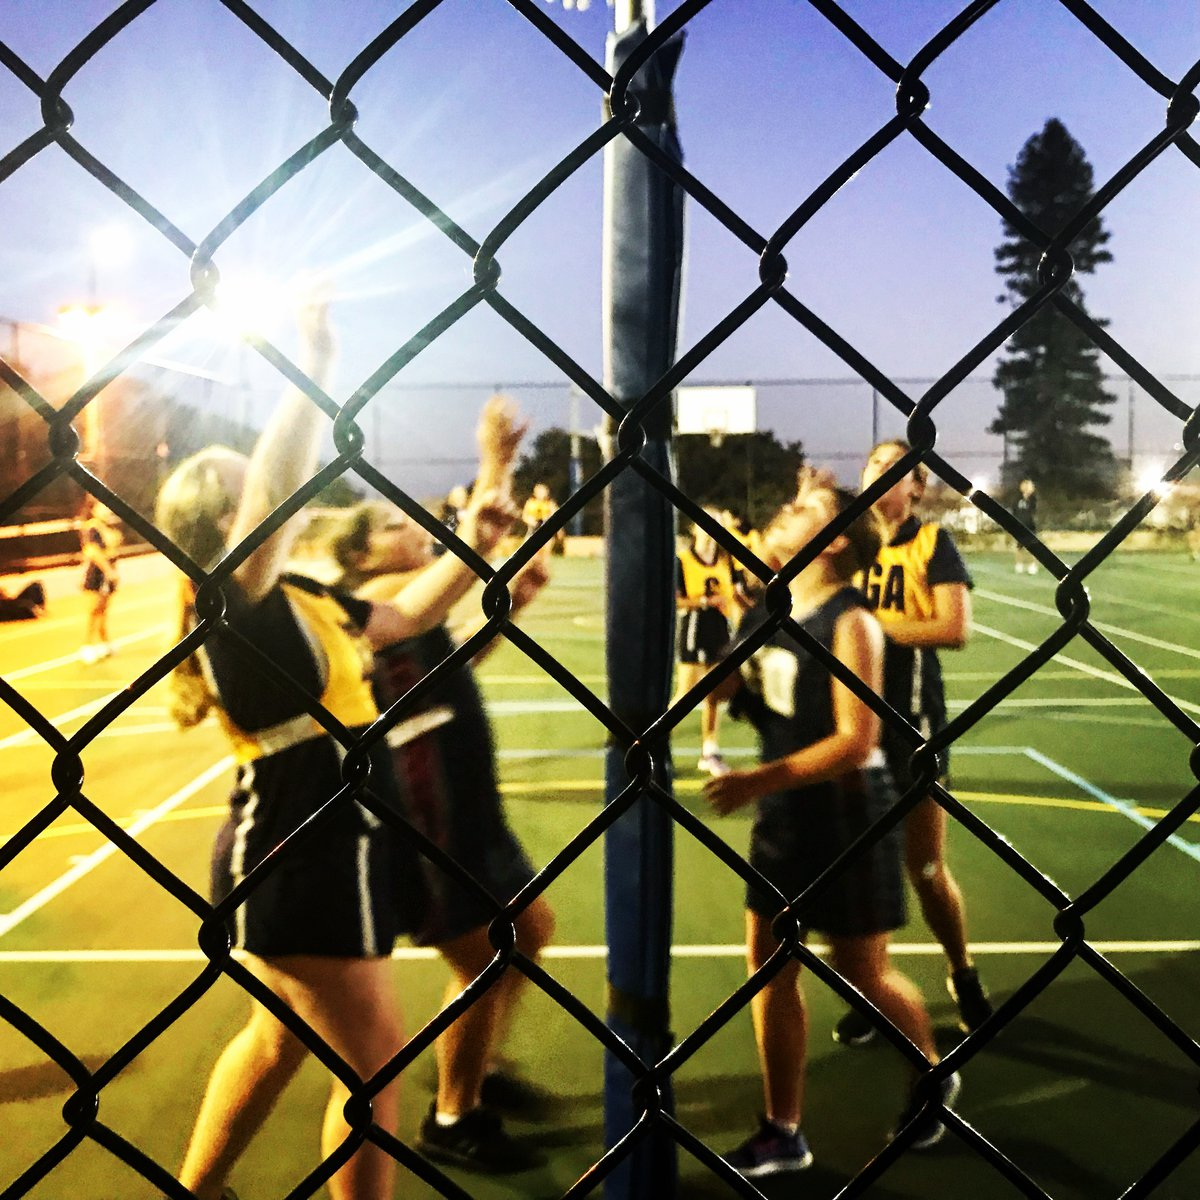 5th June St Cath's Netball Games Cancelled